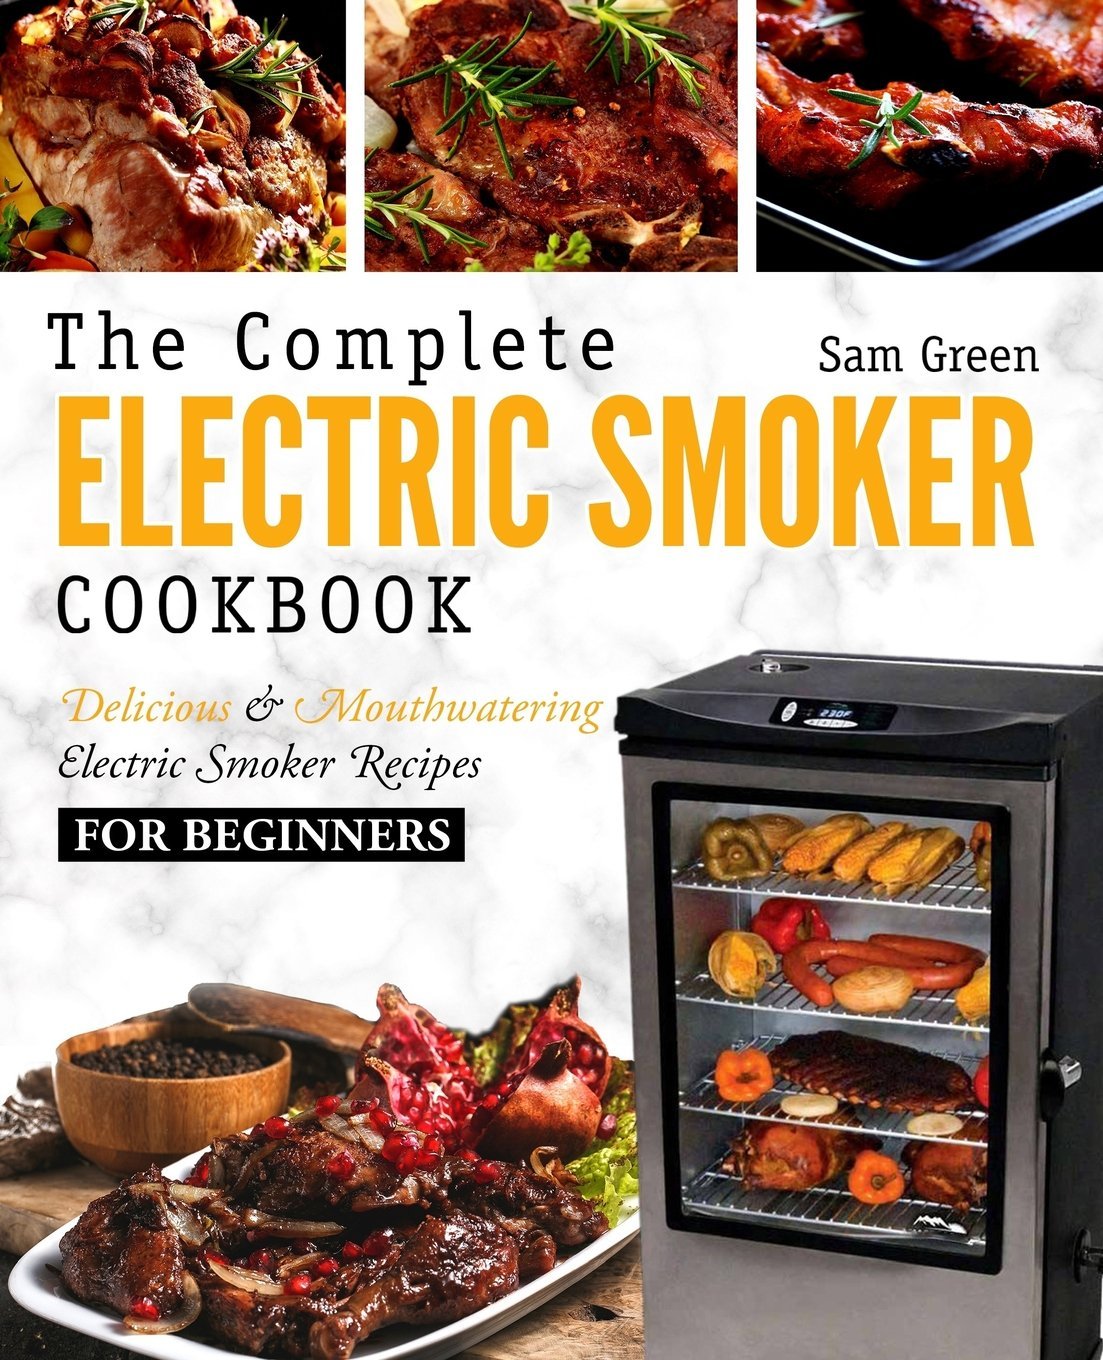 Electric Smoker Cookbook: The Complete Electric Smoker Cookbook - Delicious And Mouthwatering Electric Smoker Recipes For ...